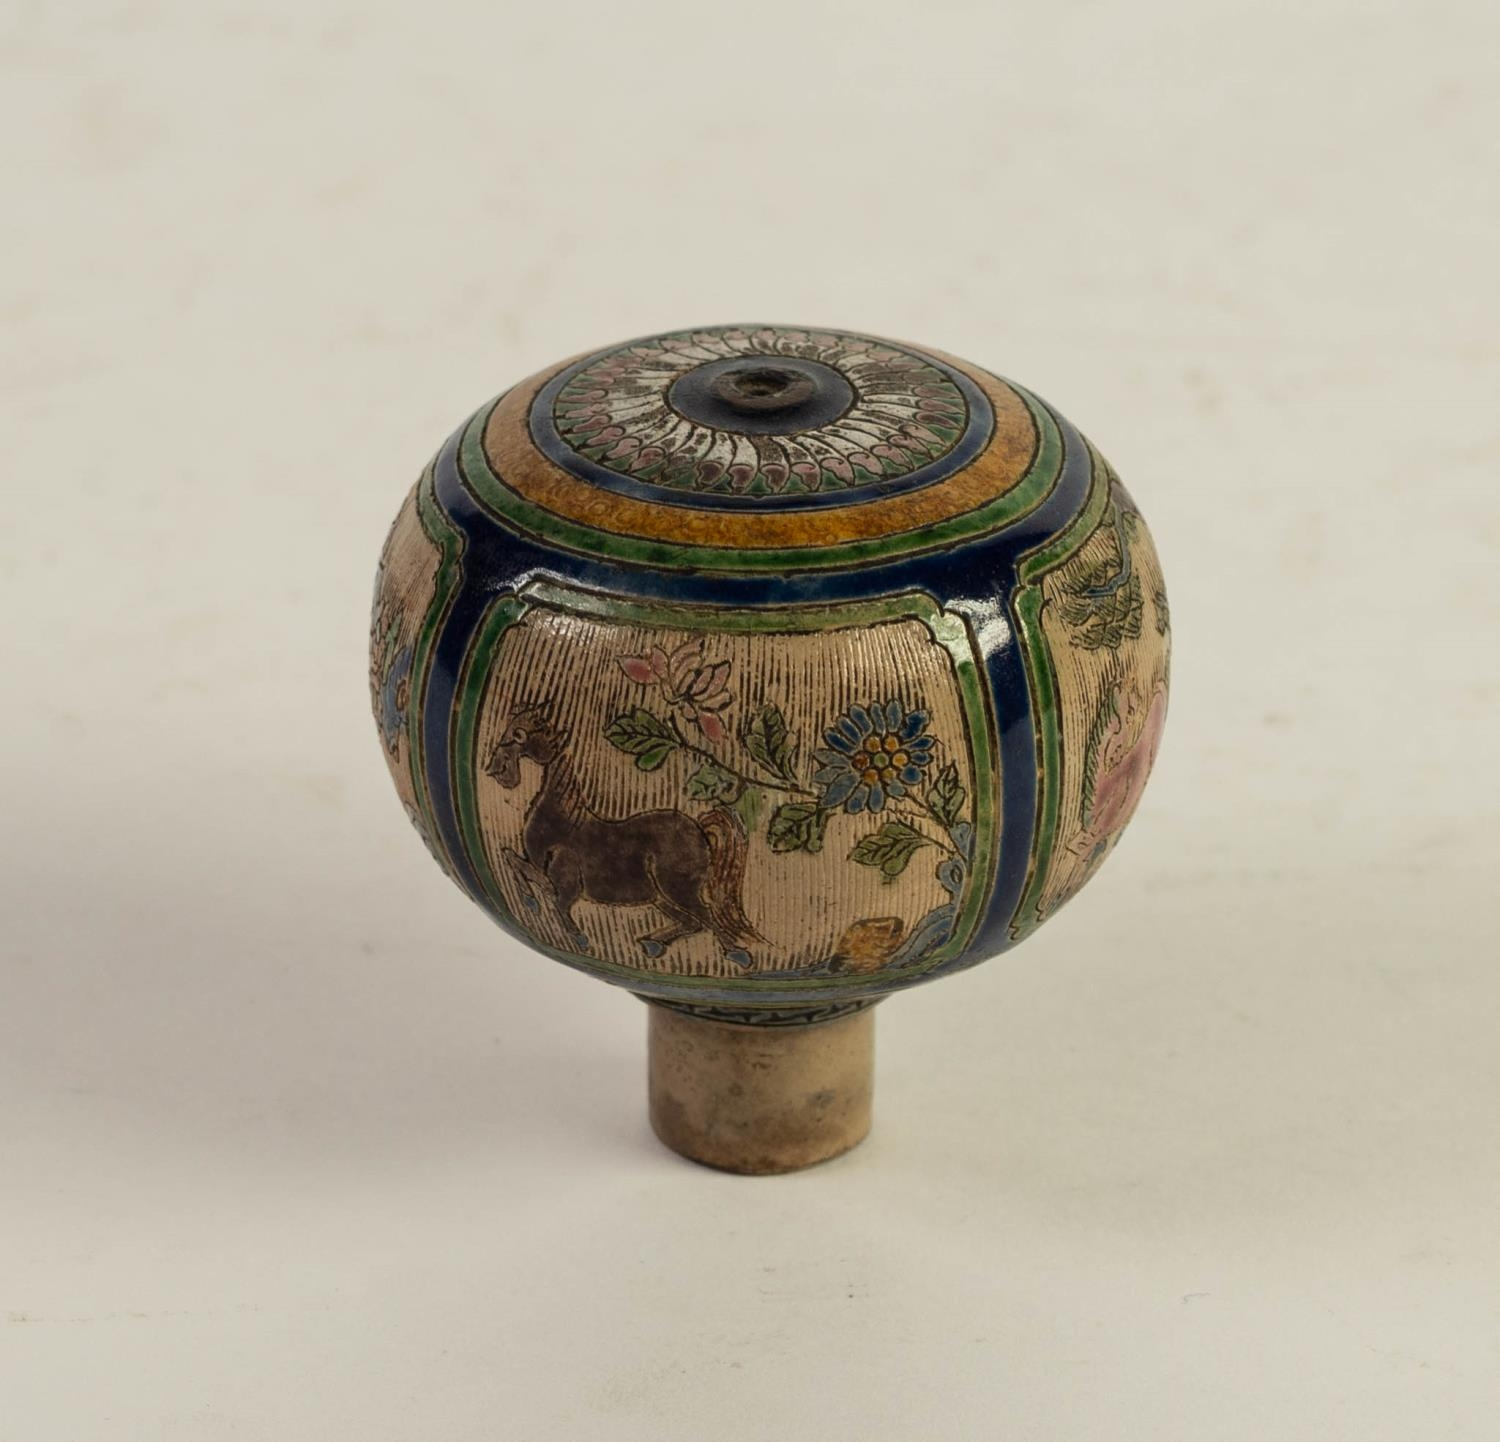 CHINESE QING DYNASTY PORCELANEOUS ORBICULAR KNOB OR FINIAL, incised and enamelled with four panels - Image 3 of 6